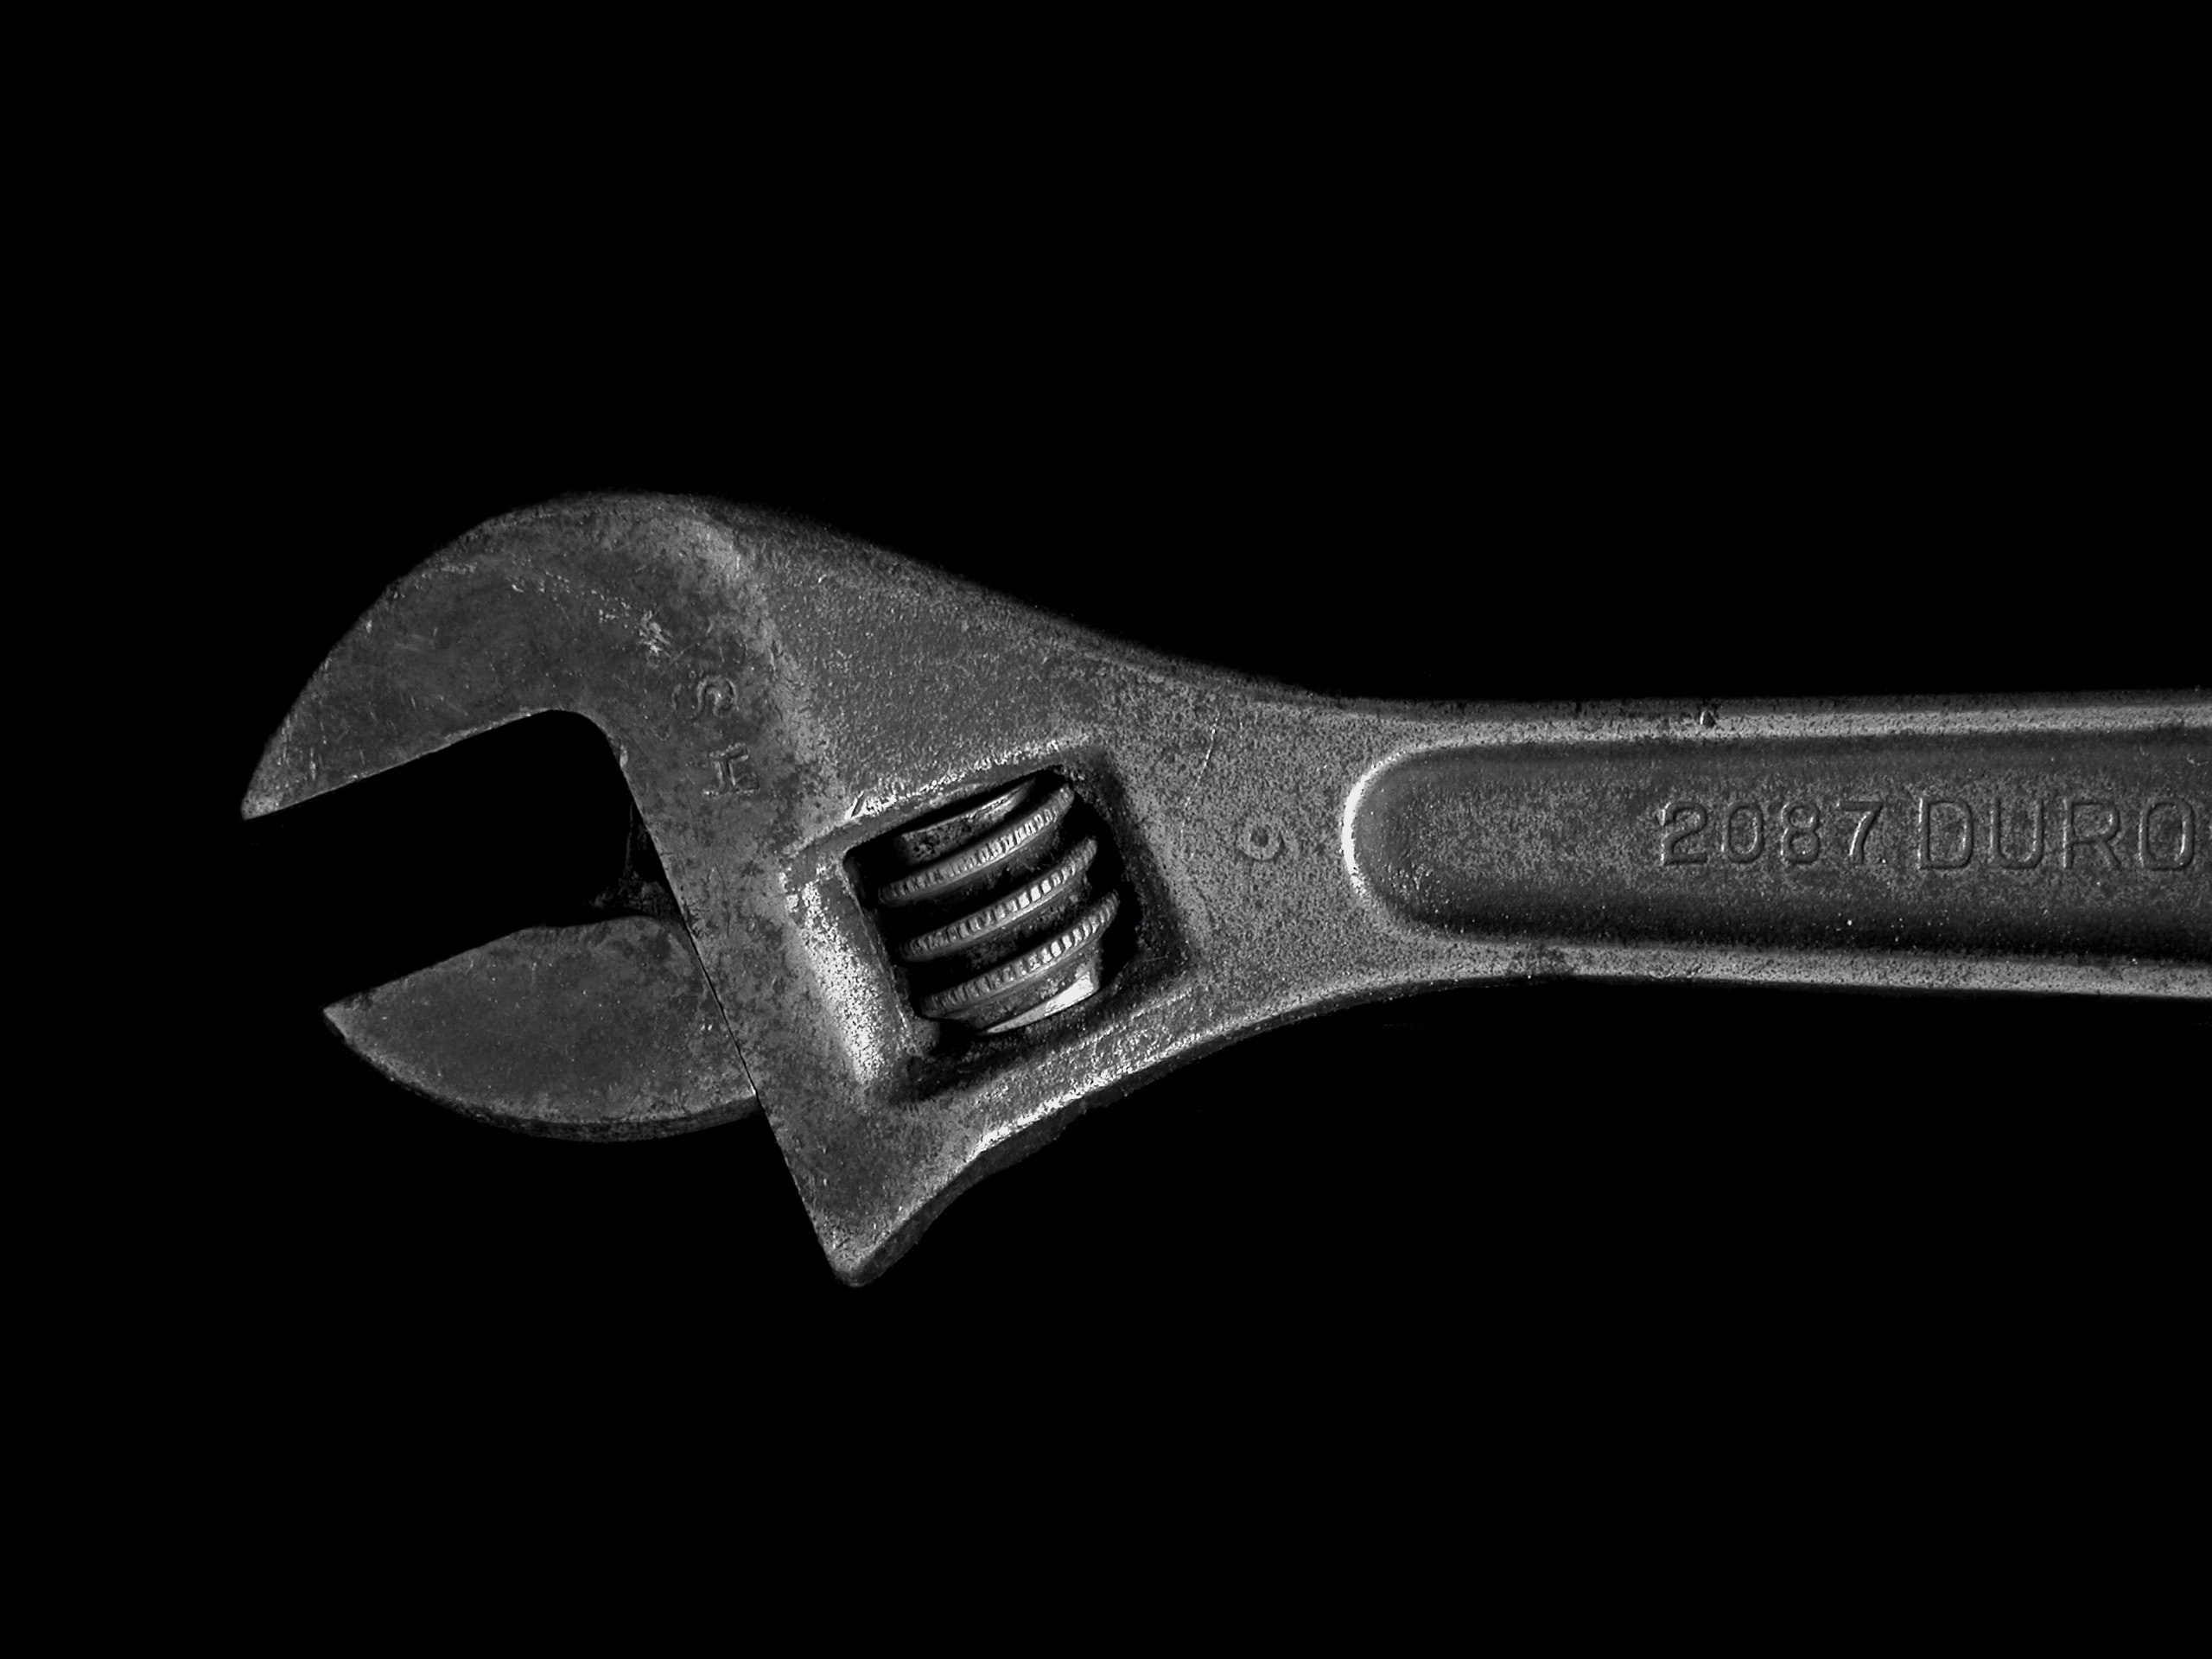 gray metal adjustable wrench